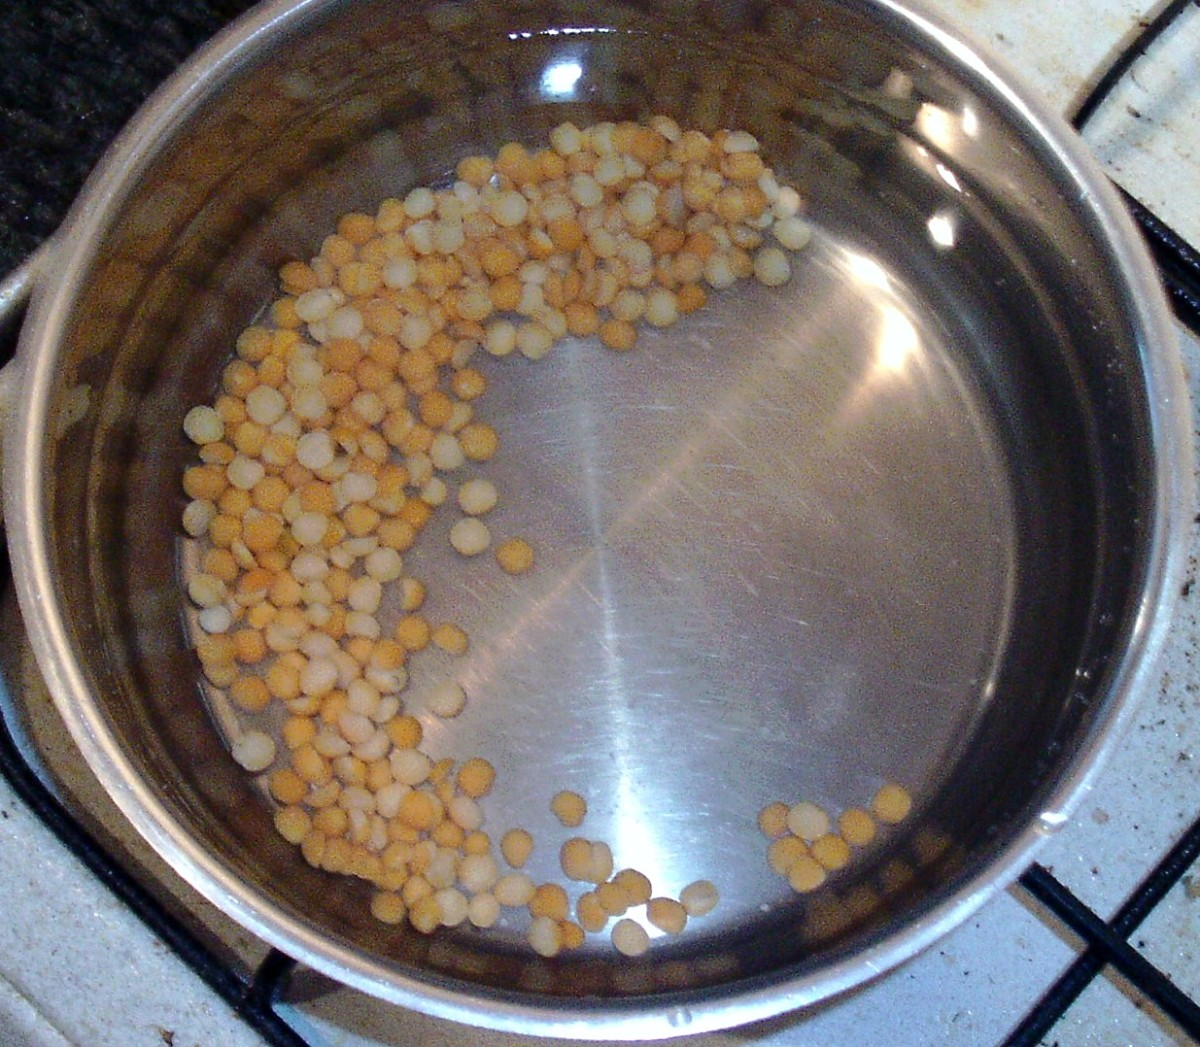 Dried yellow split peas